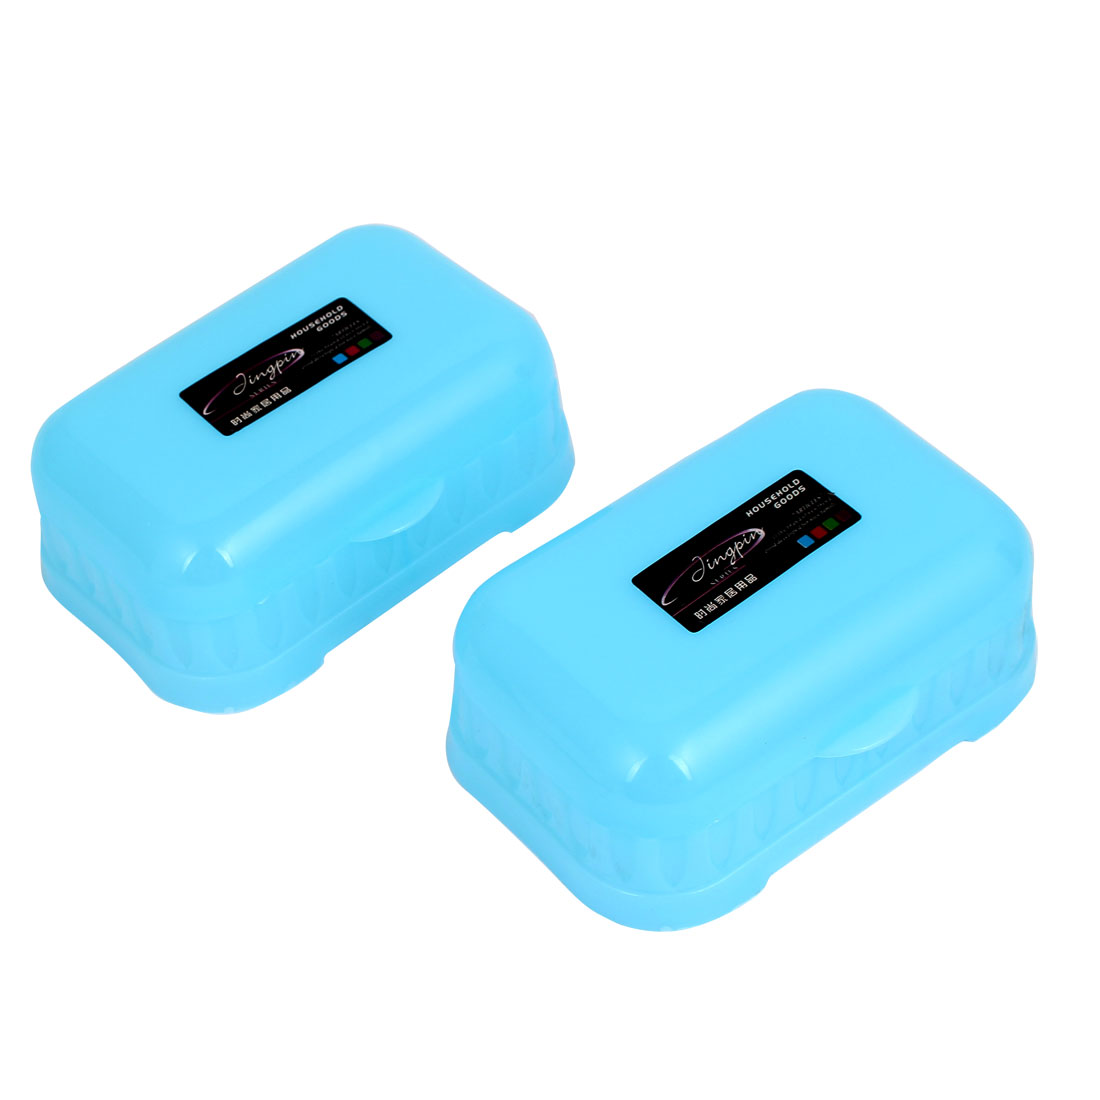 2 Pcs Sky Blue Plastic Rectangular Shape Hollow Out Bottom Soap Holders Containers Boxes Cases